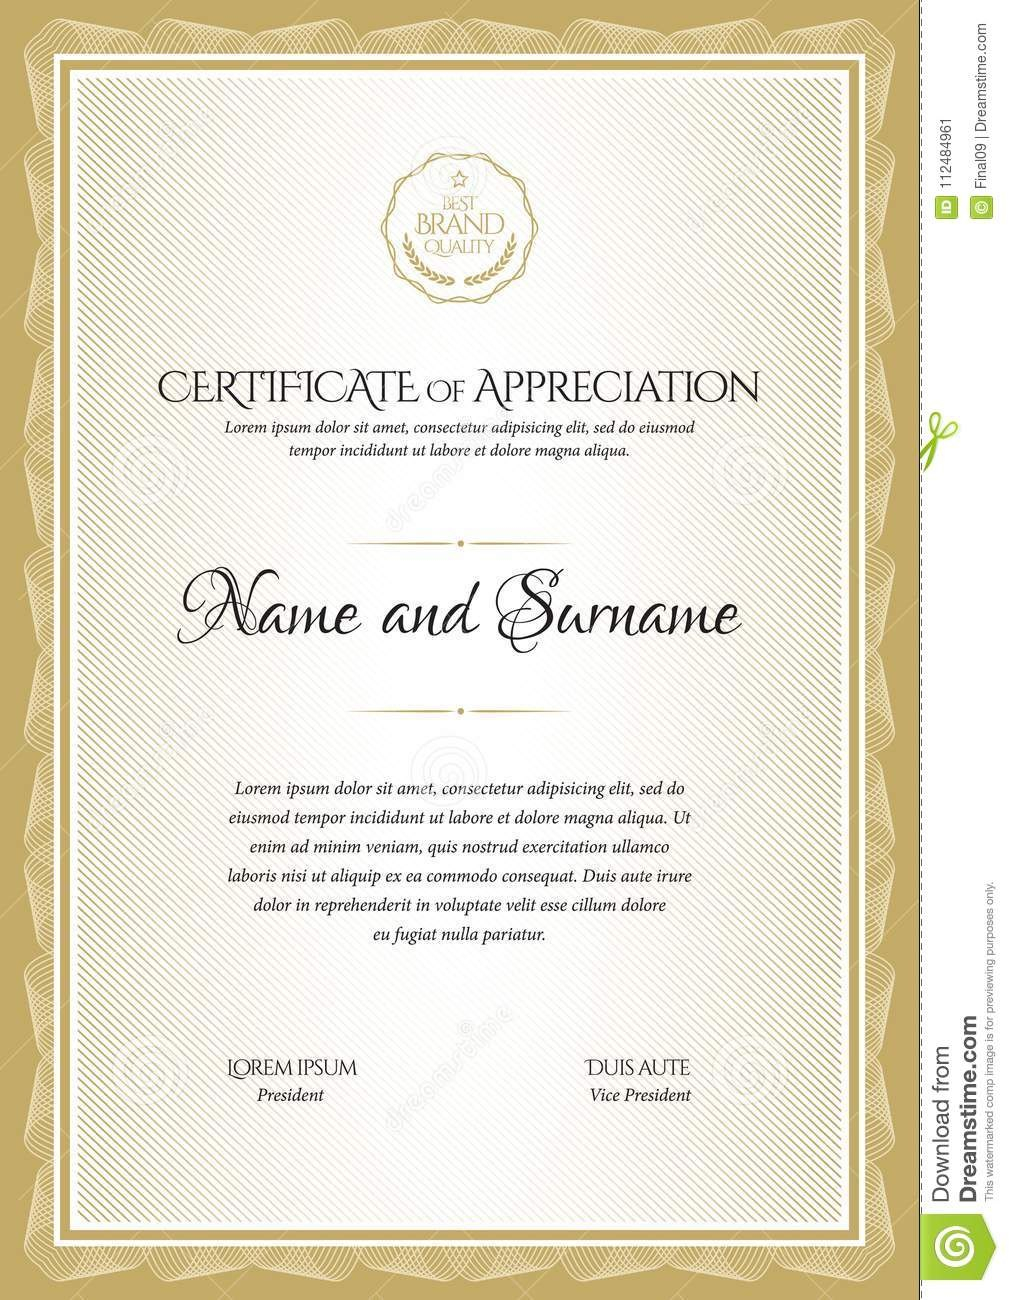 Certificate Template Diploma Currency Border Stock Vector Within Commemorative Certificate Template